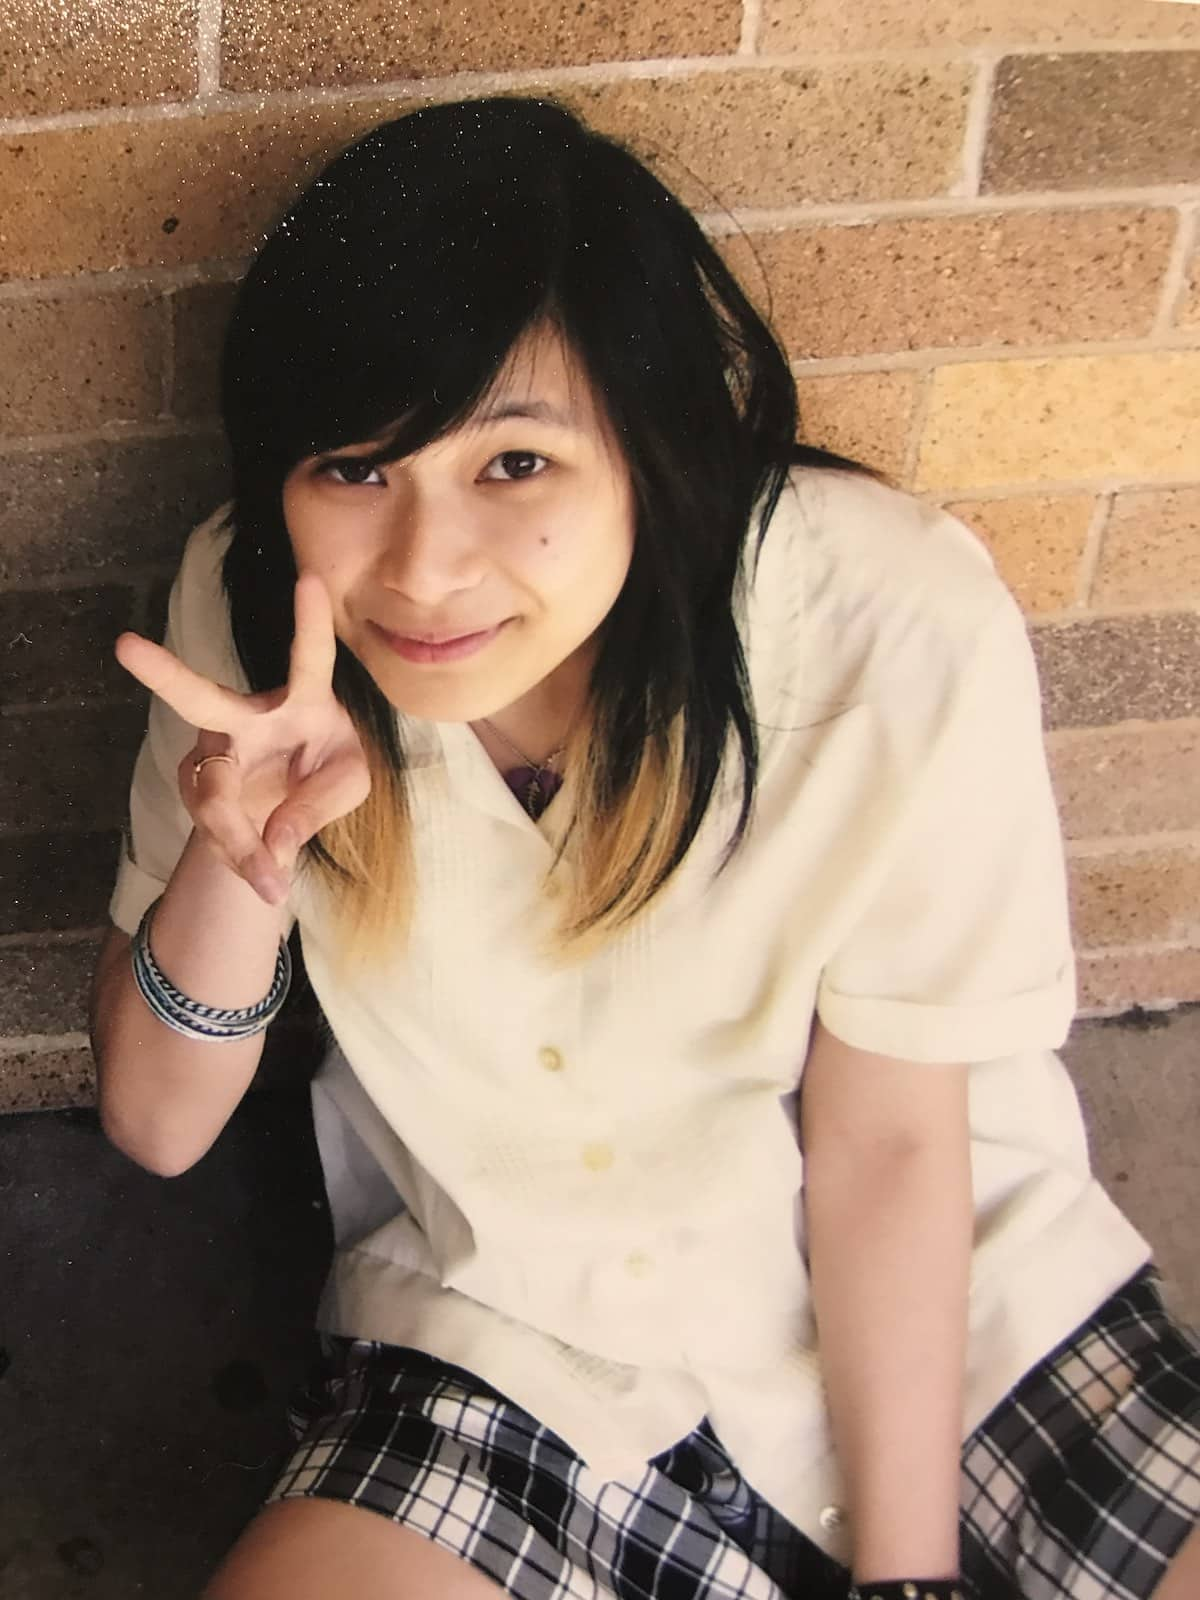 A girl in a school uniform holding her two fingers up in a peace sign. She has short dark hair with blonde ends